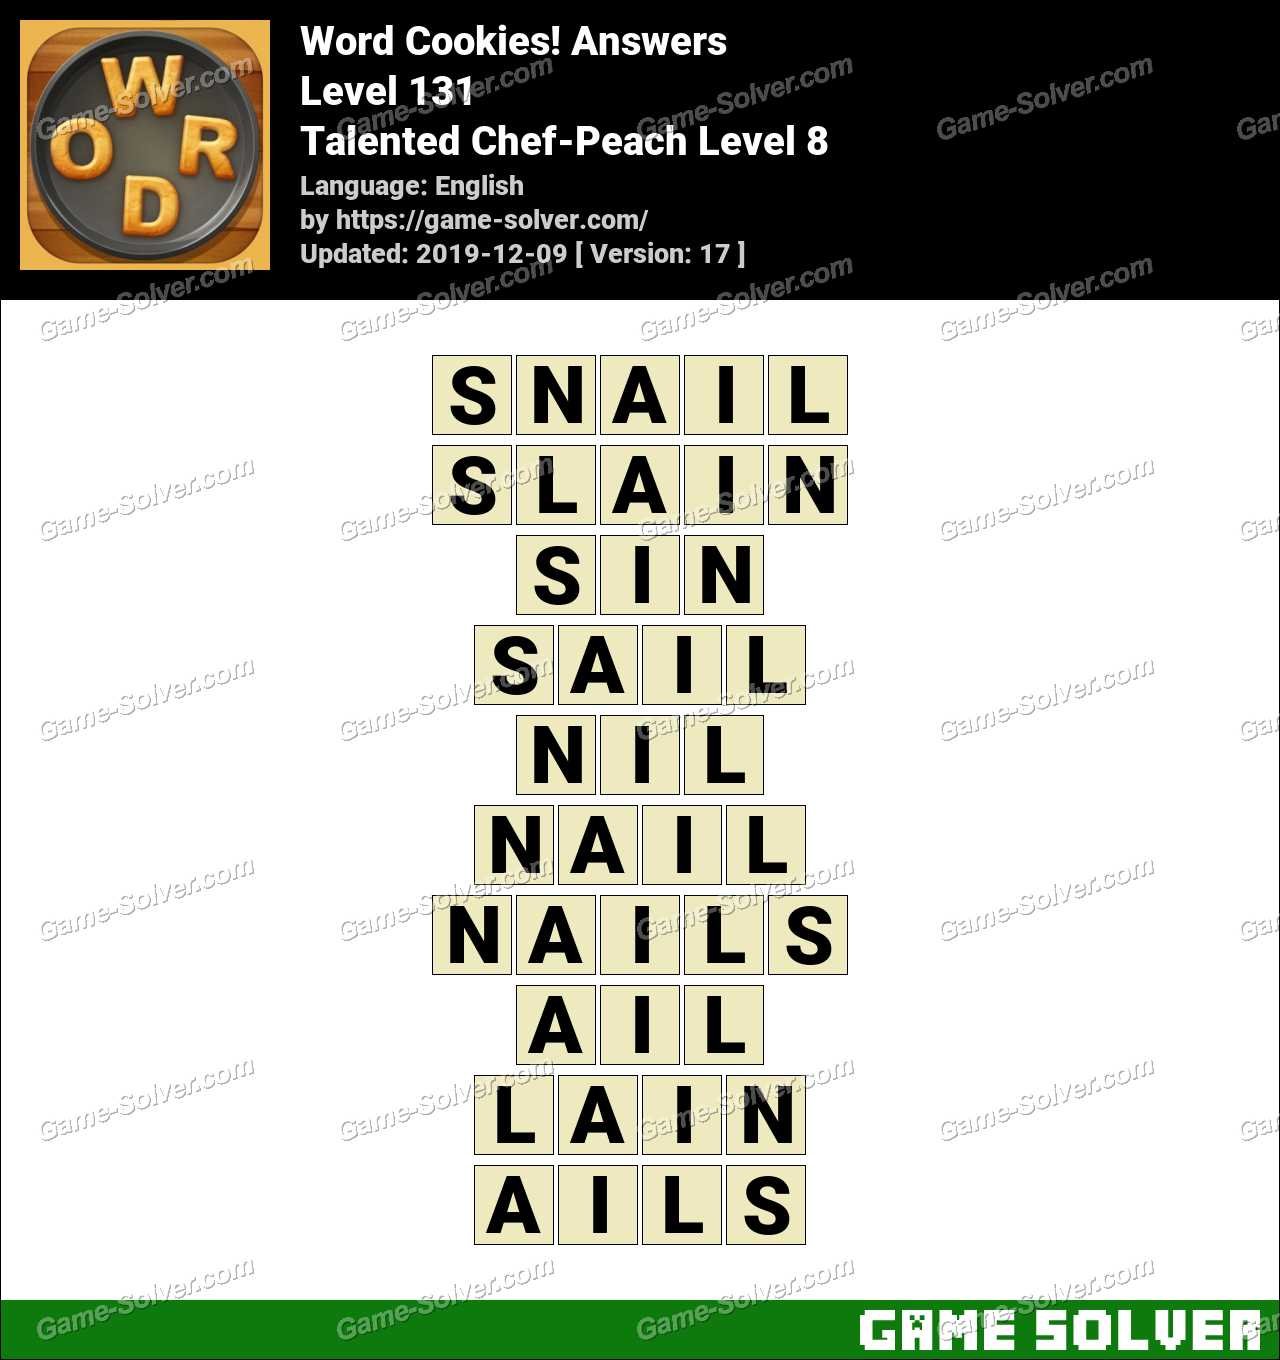 Word Cookies Talented Chef-Peach Level 8 Answers